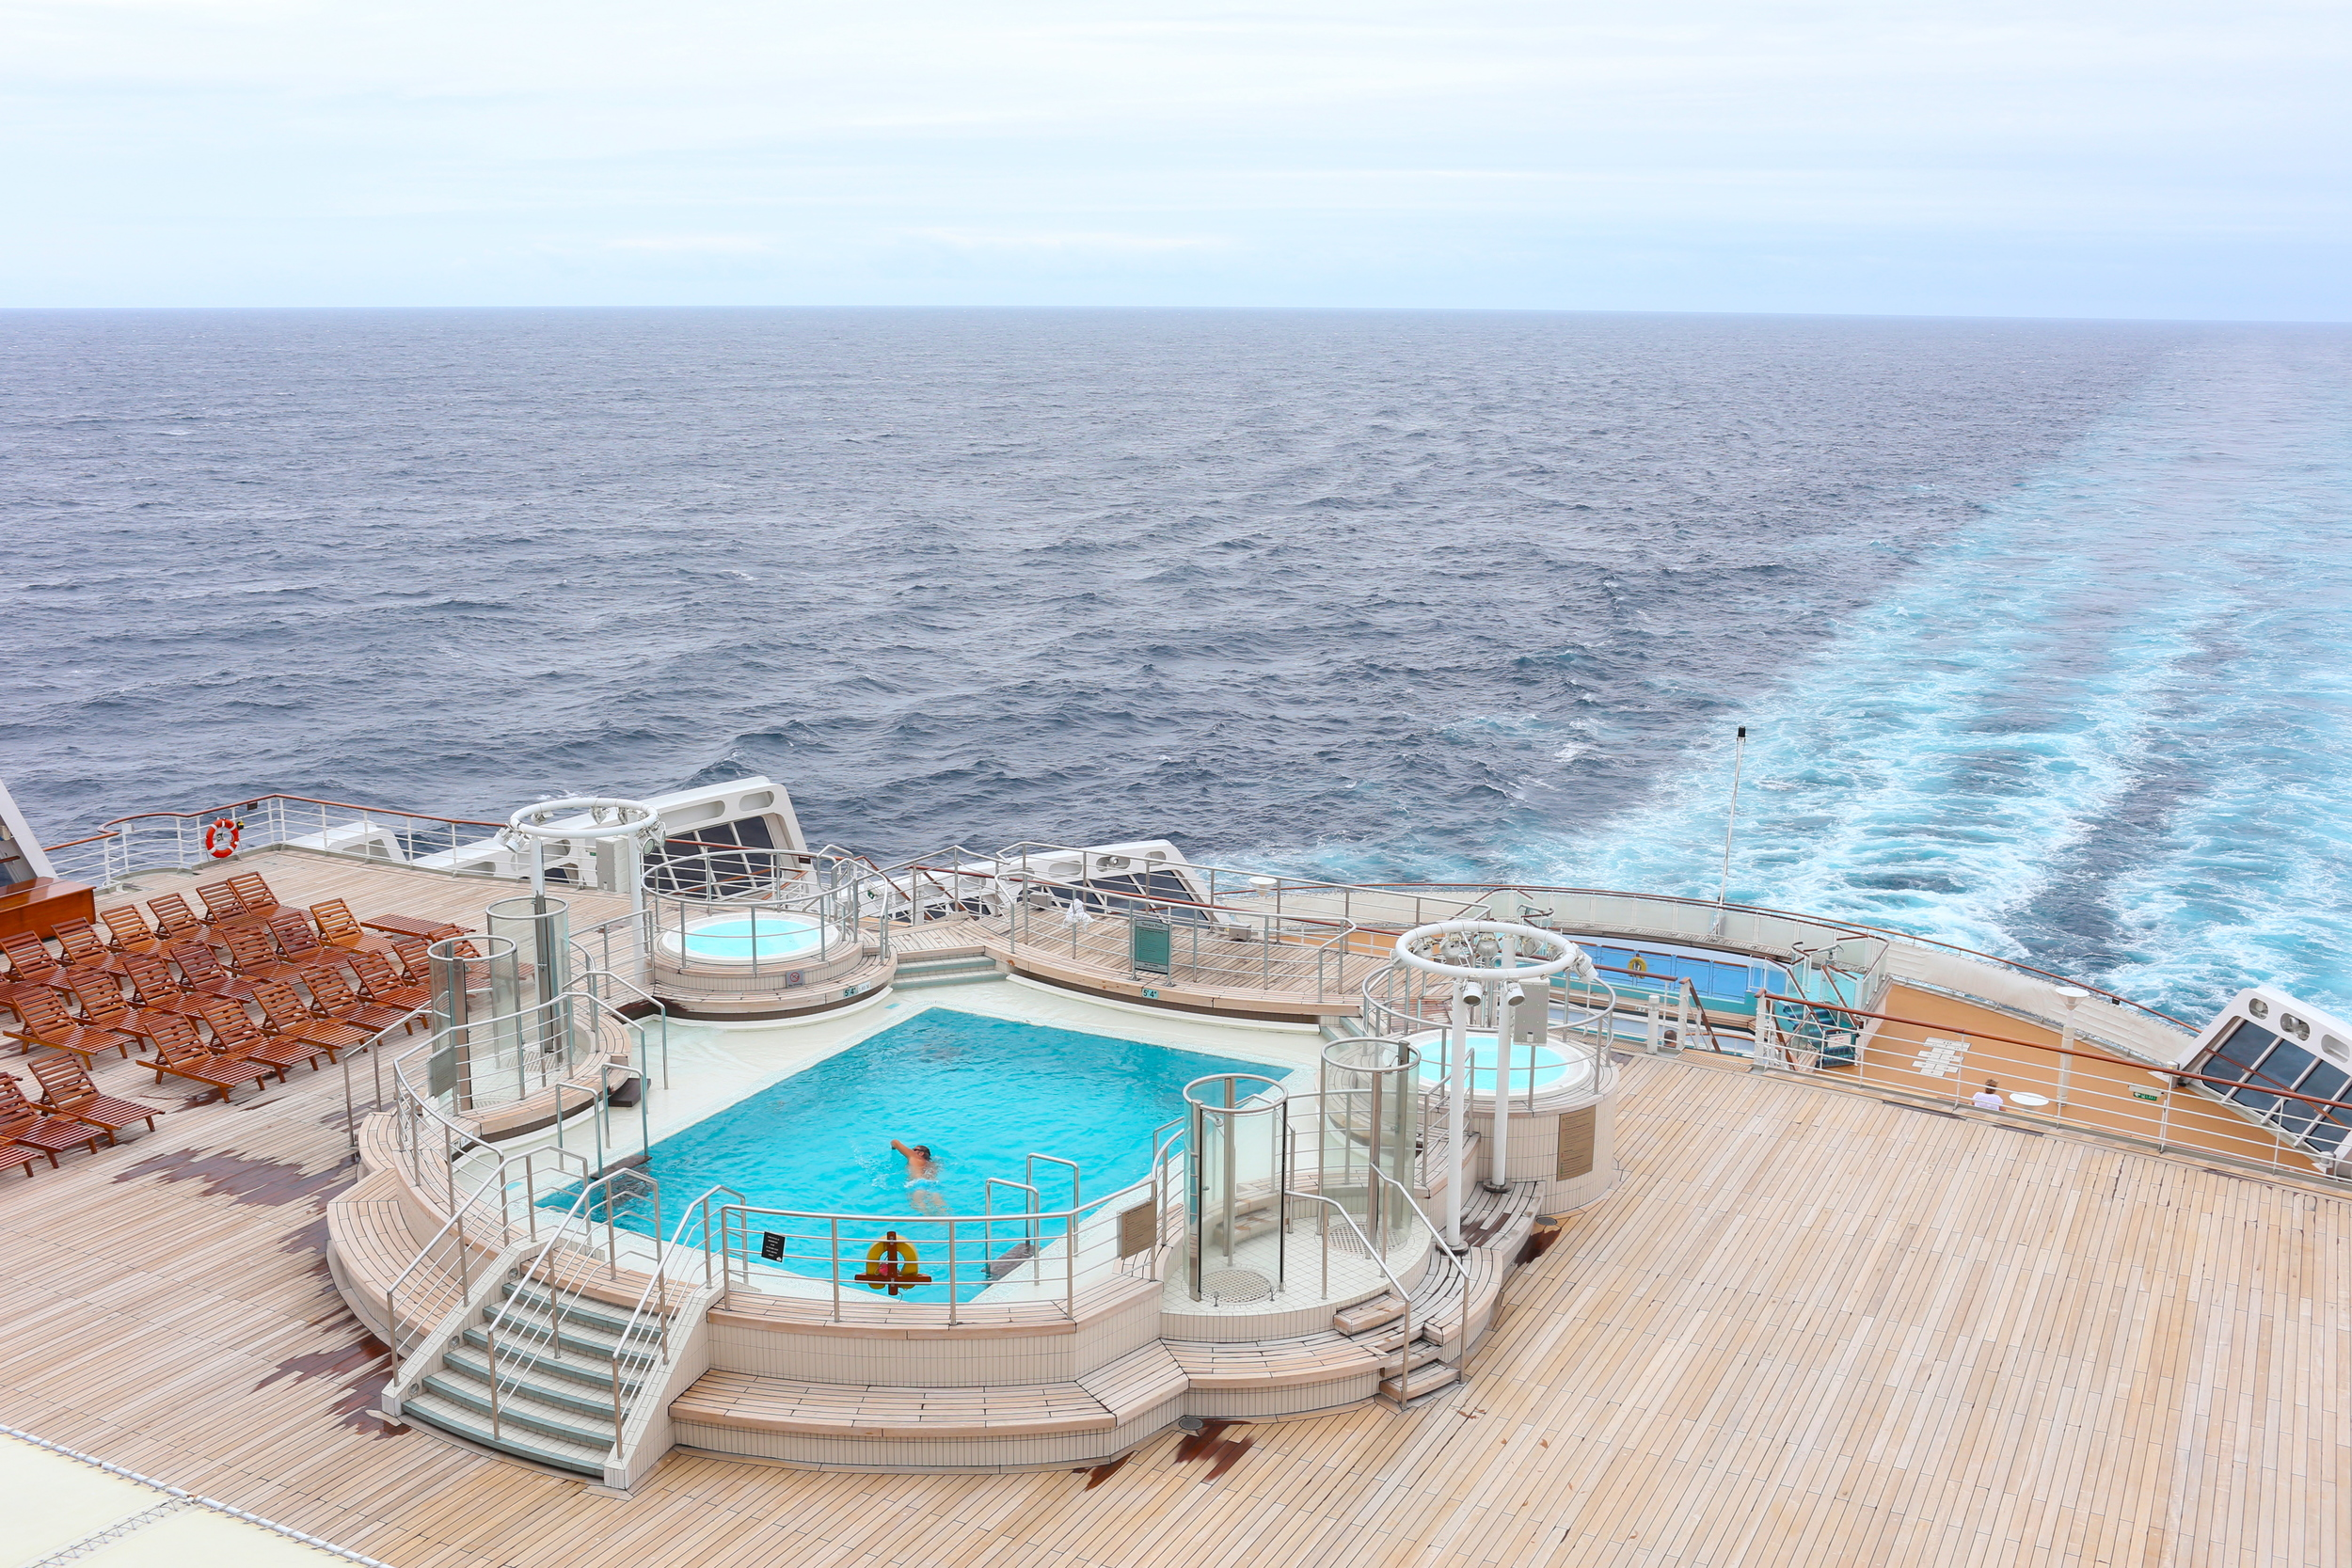 There were actually five pools on the ship, one of which was only useable for a day since it was in the windiest part of the ship. The weather remained blustery, sometimes warm, but mostly a bit overcast and cloudy. It made for lovely walks around the deck, sauna sits, and a nice environment to simply watch the sky or read while the ship bounded along, slowly rocking.